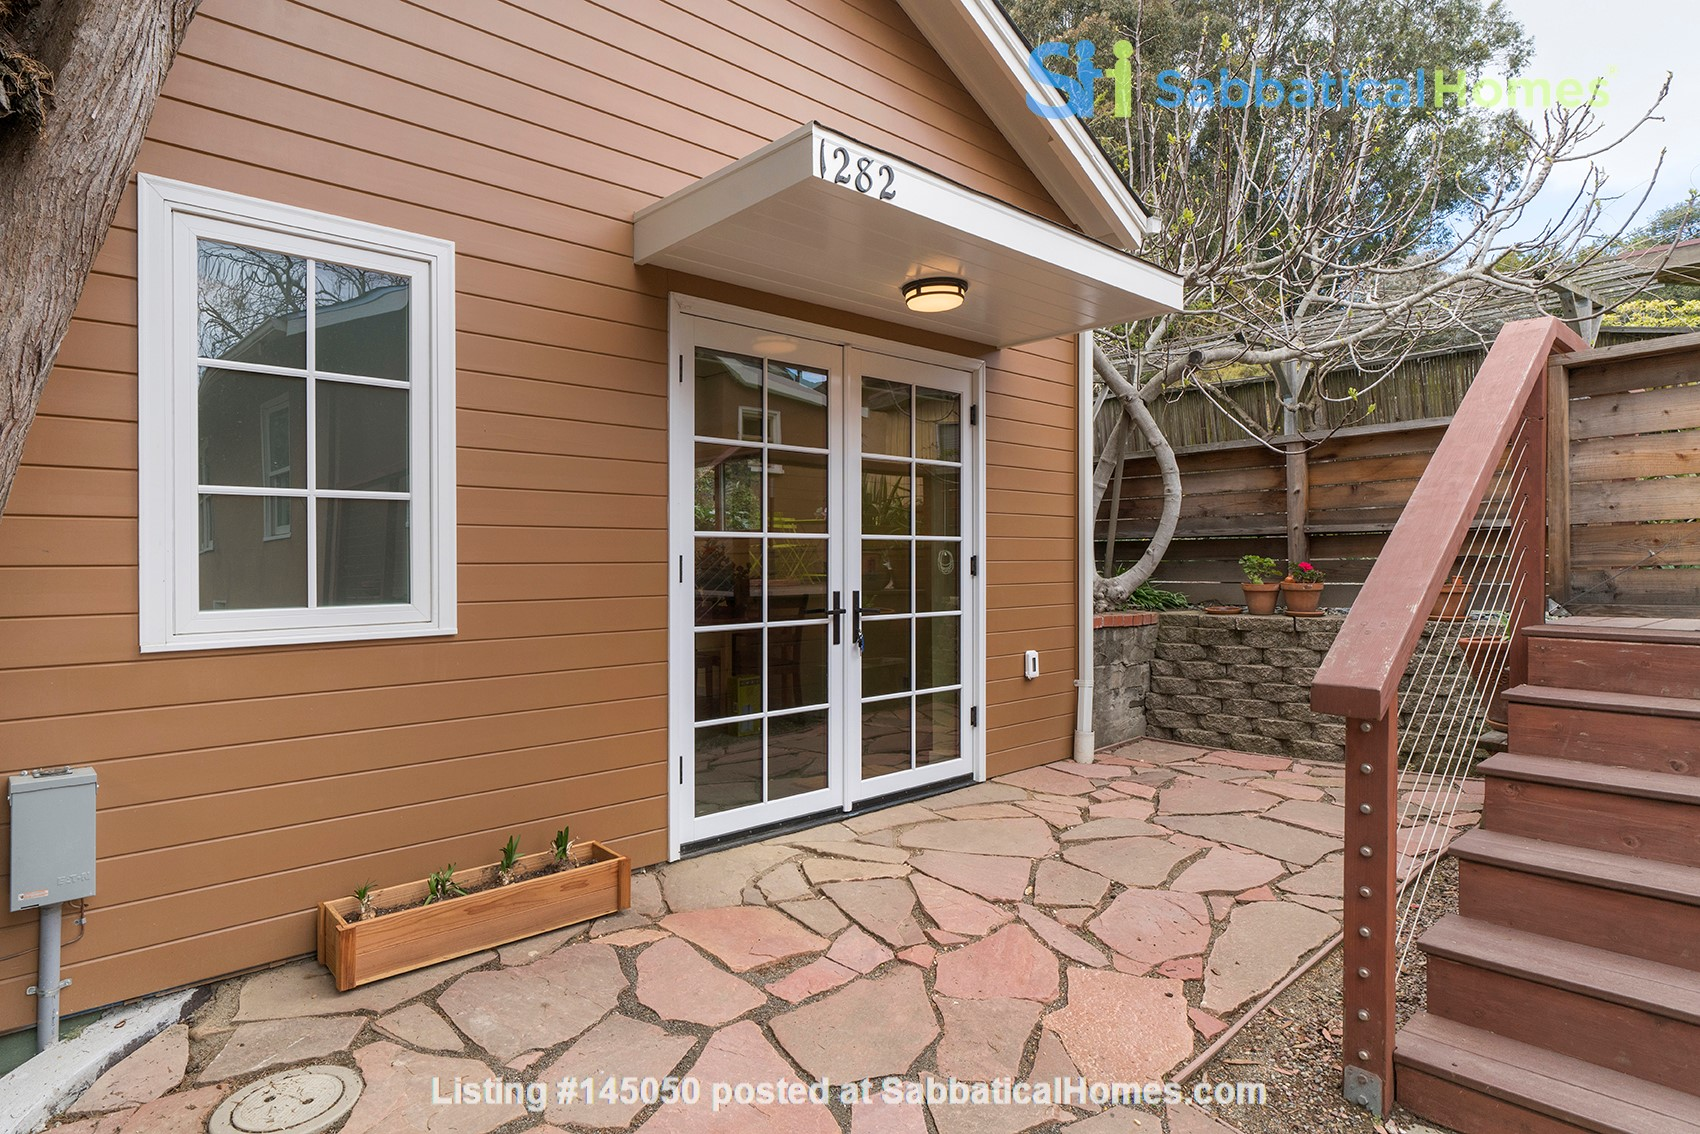 Light Filled, Fully Furnished Cottage in Great Berkeley Neighborhood Home Rental in Berkeley, California, United States 5